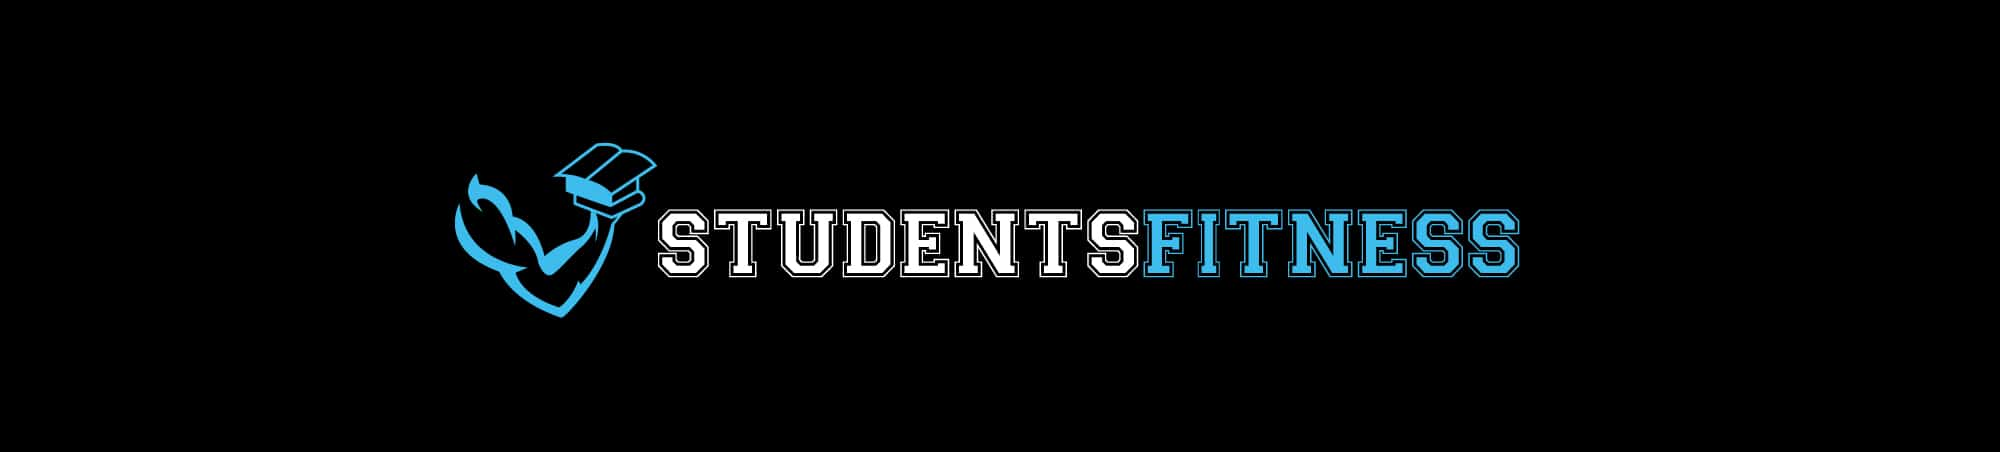 Students Fitness SF Logo Black